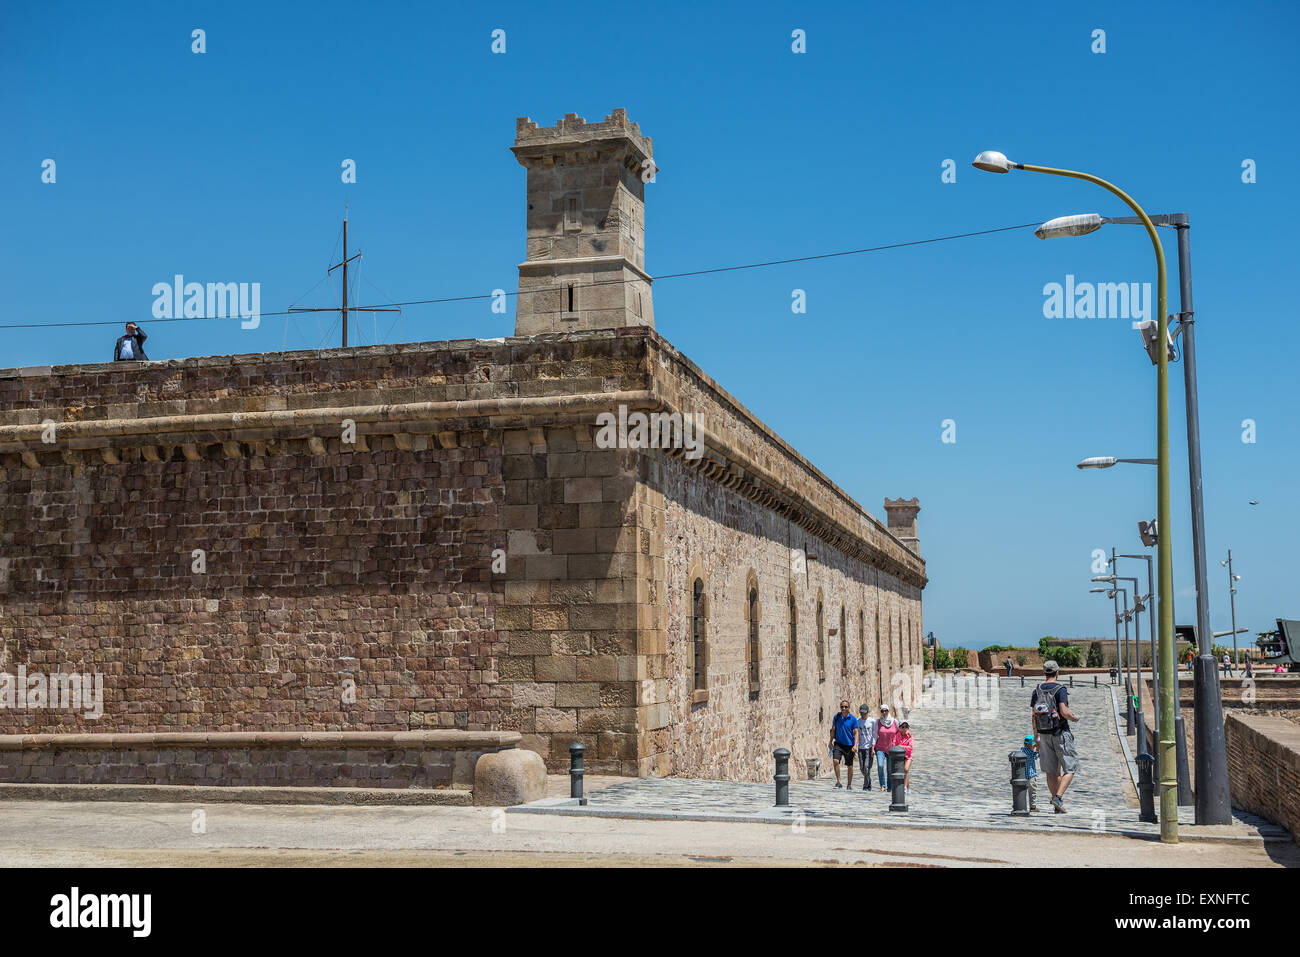 Montjuic Castle (Castillo De Montjuich) Old Military Fortress On Jewish  Mountain In Barcelona, Spain Great Pictures